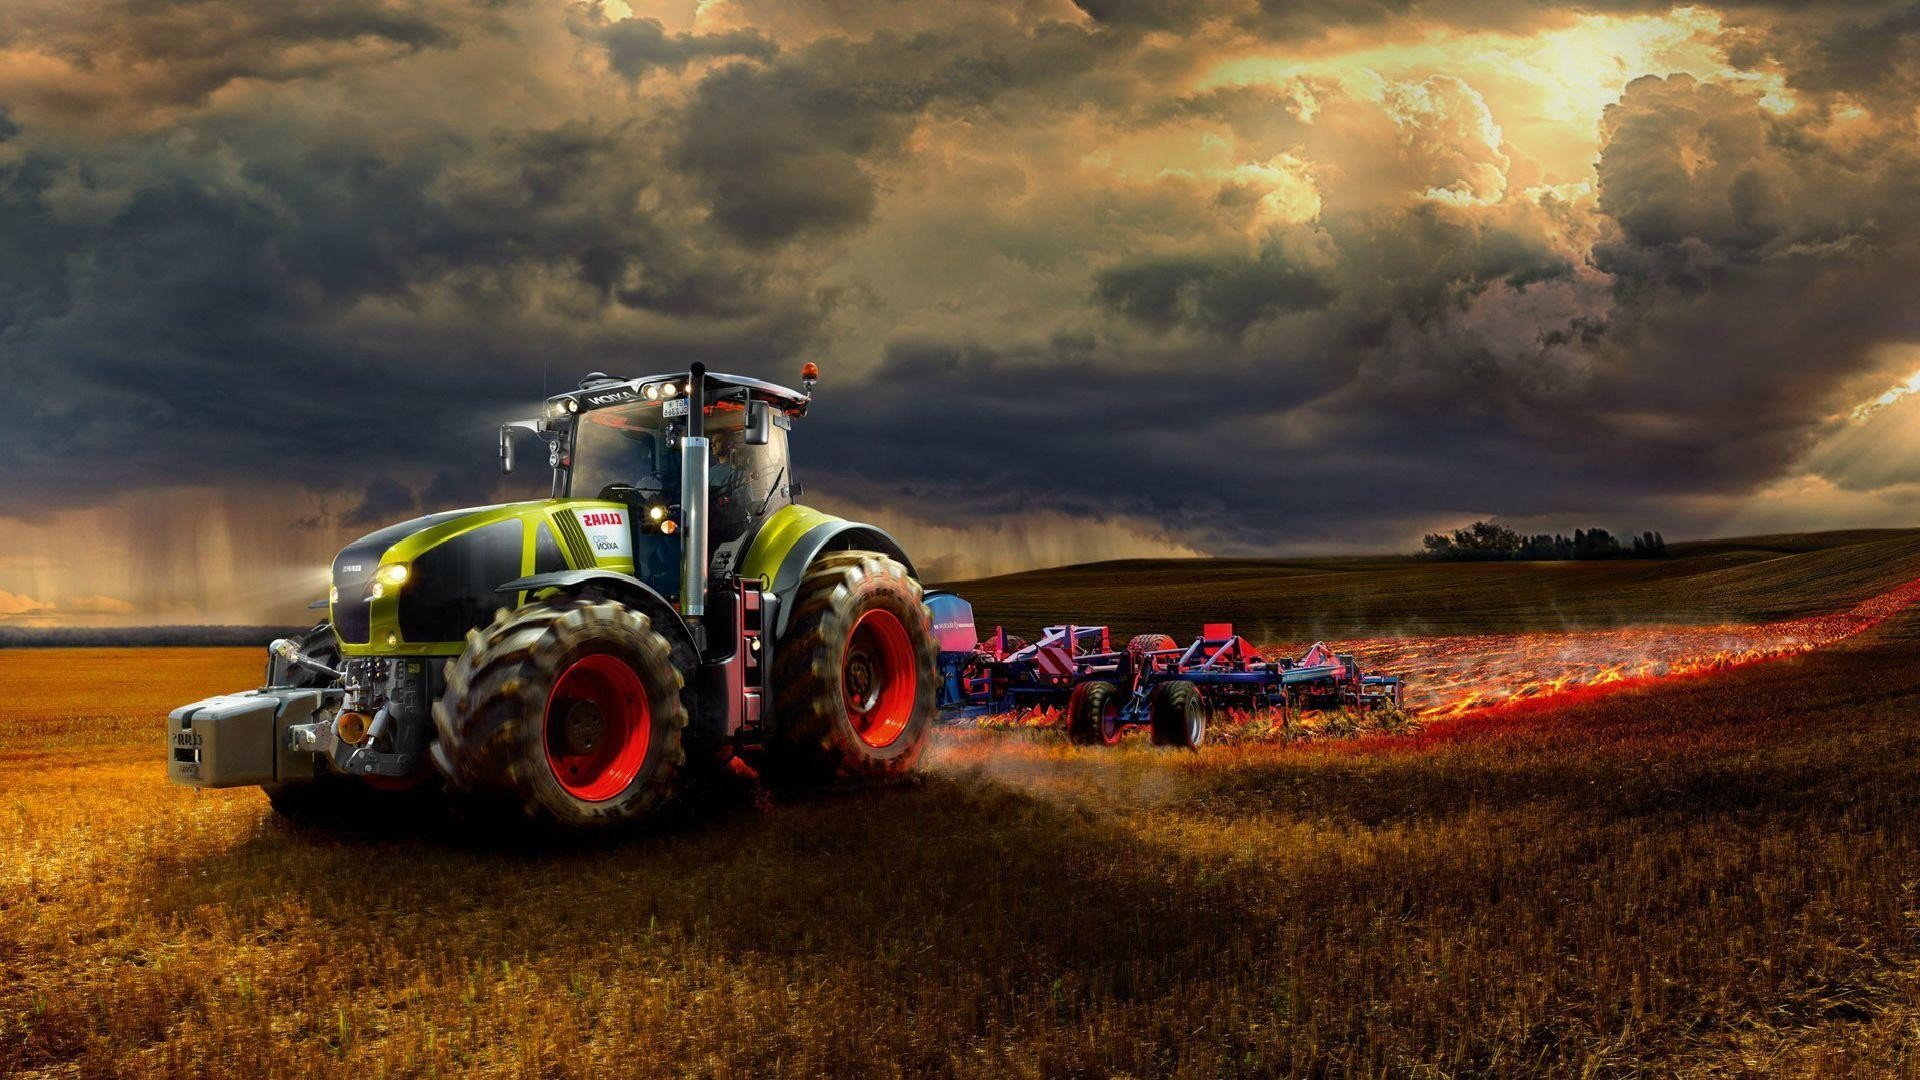 Tractor Wallpaper 64 images 1920x1080